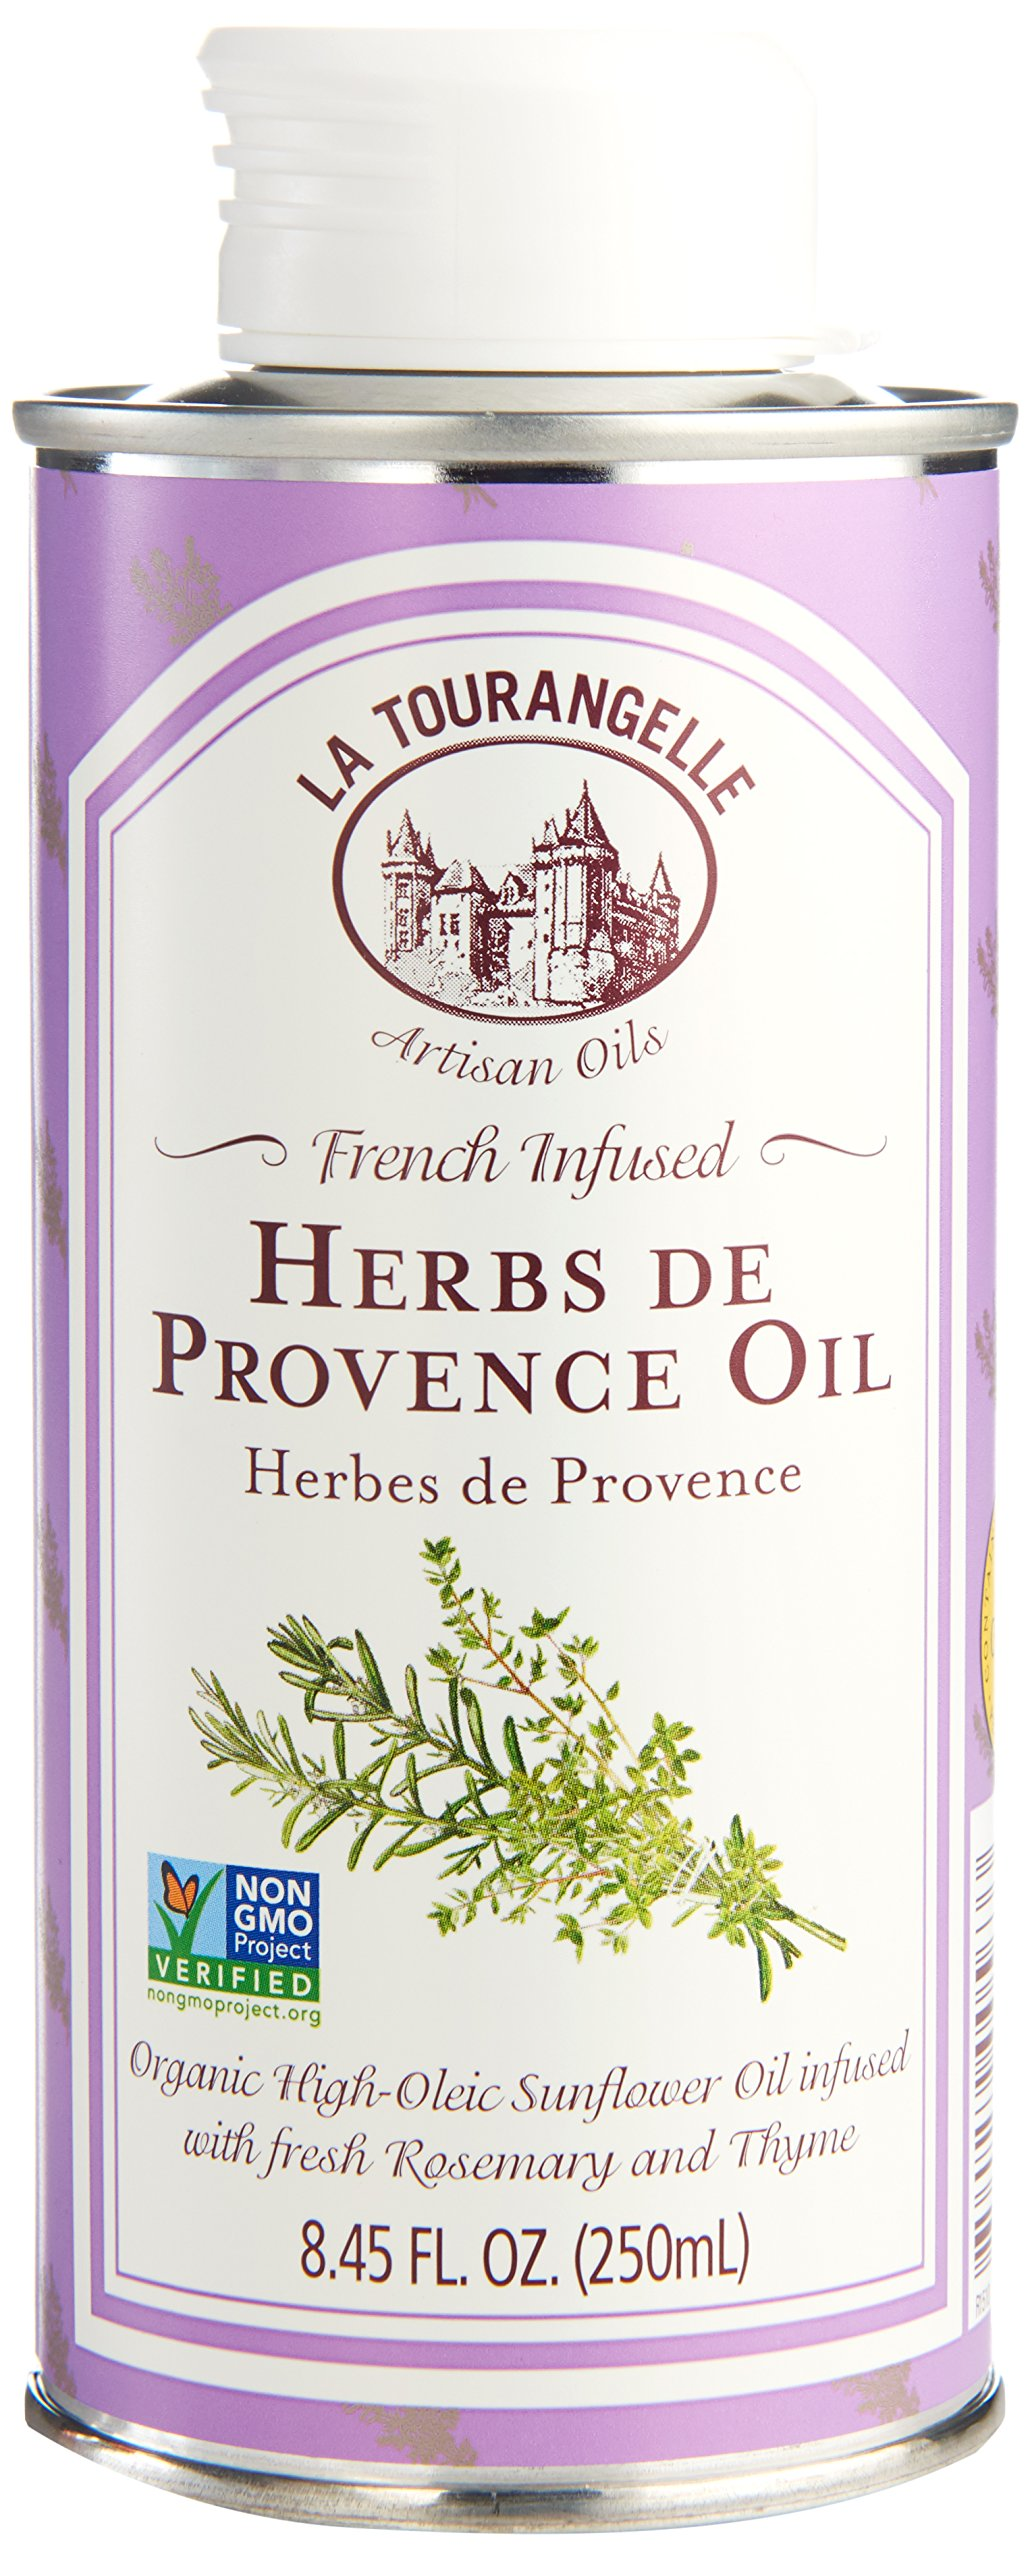 La Tourangelle Herbs De Provence Infused Sunflower Oil 8.45 Fl. Oz, Sunflower Oil Infused with Fresh Rosemary and Thyme for Cooking and Seasoning